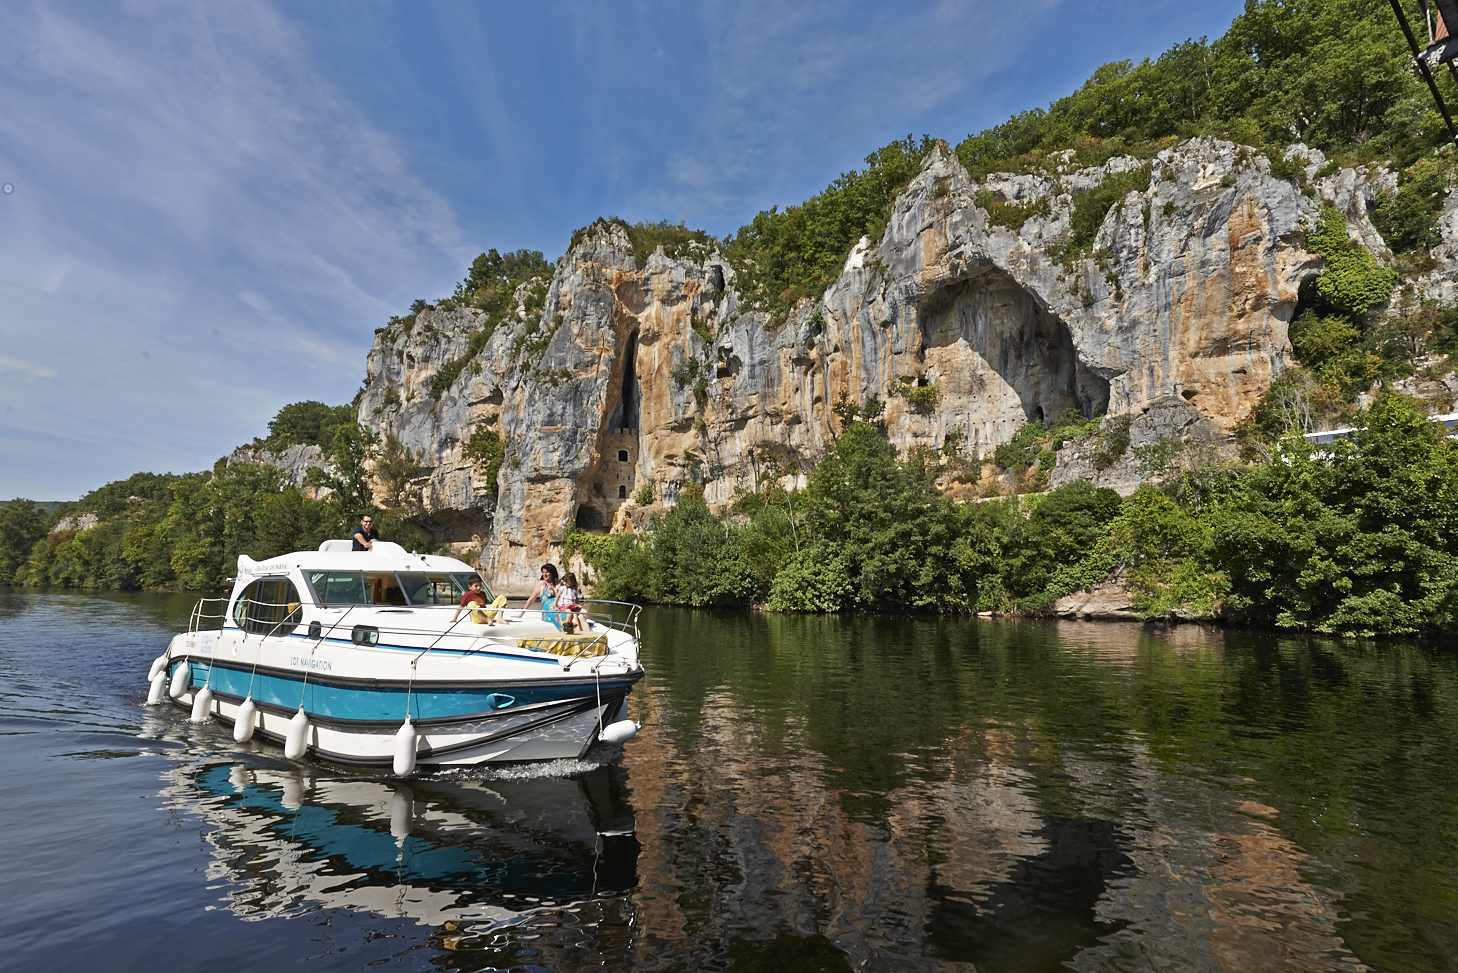 Hausboot mieten in frankreich for Traditionelles hausboot mieten